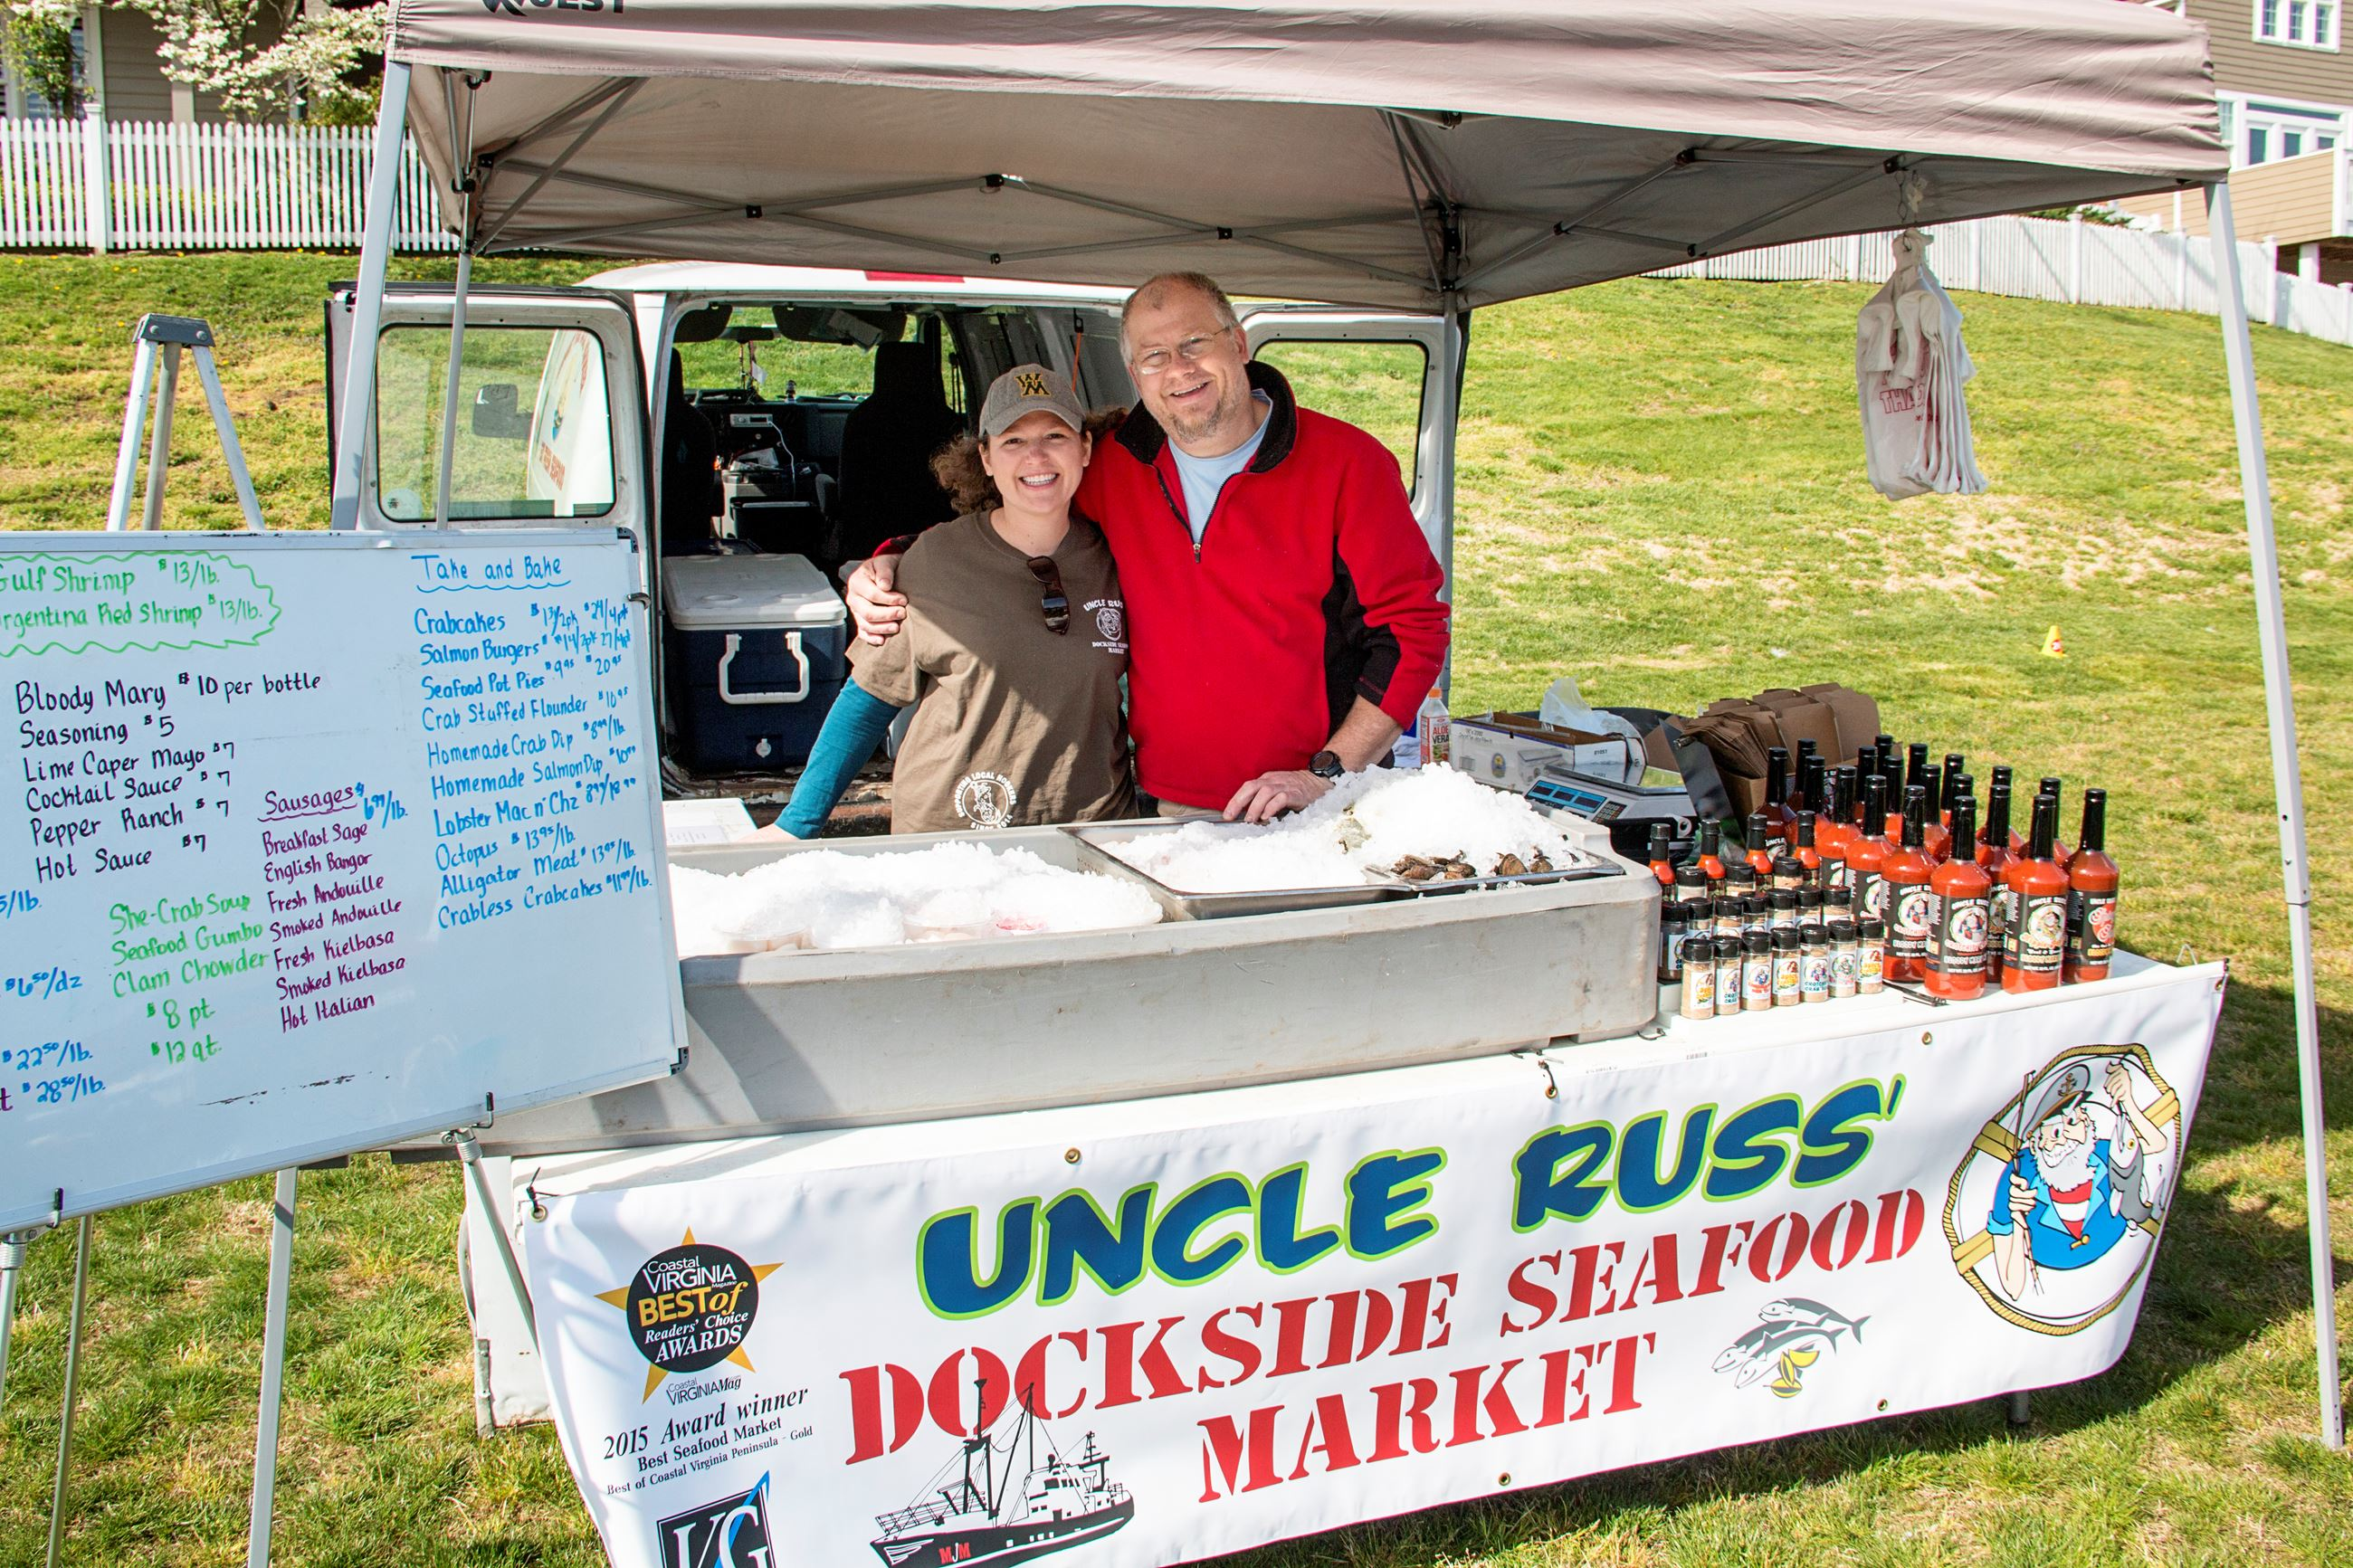 Uncle Russ' Dockside Seafood Market